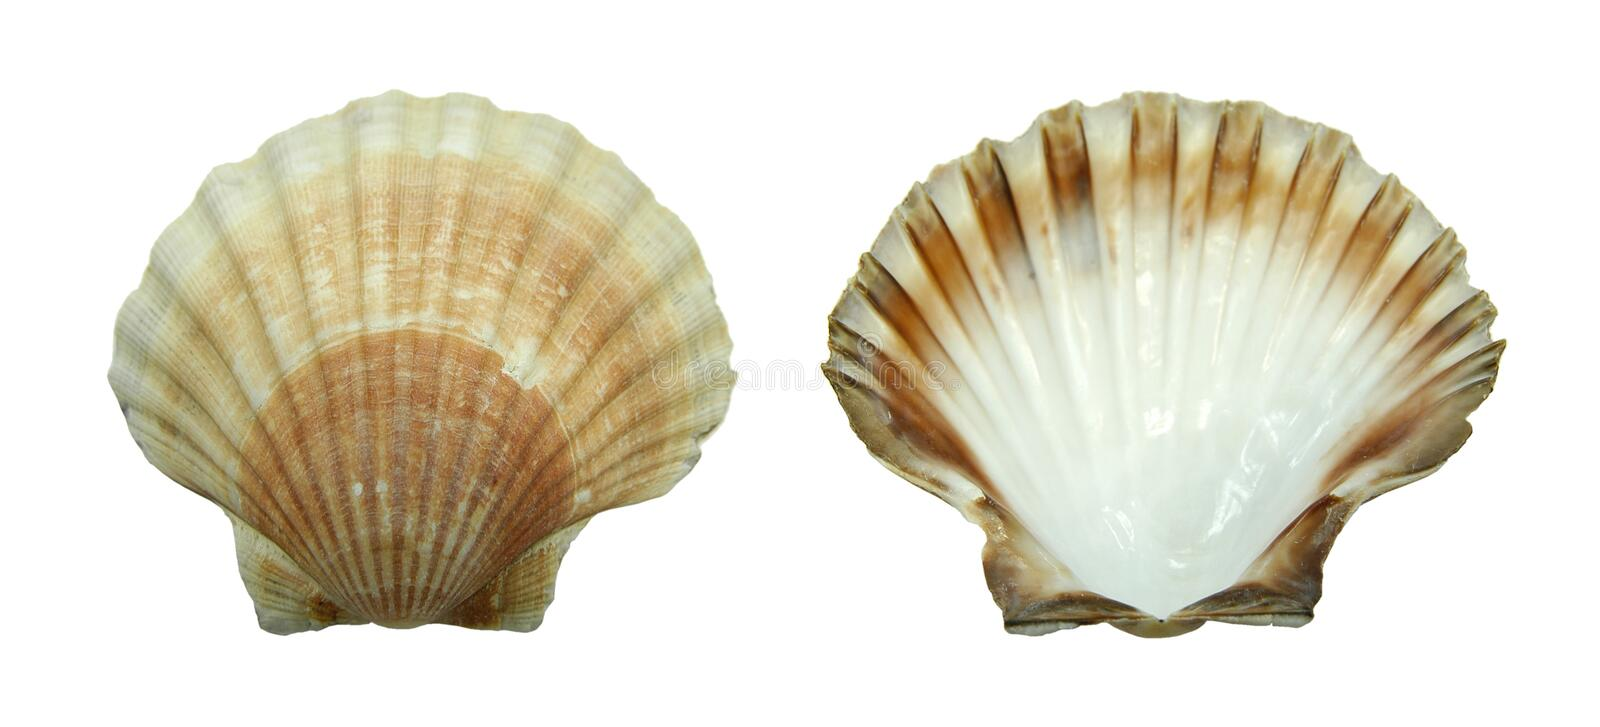 Download Decoration: shell stock image. Image of size, mollusk, natural - 71035